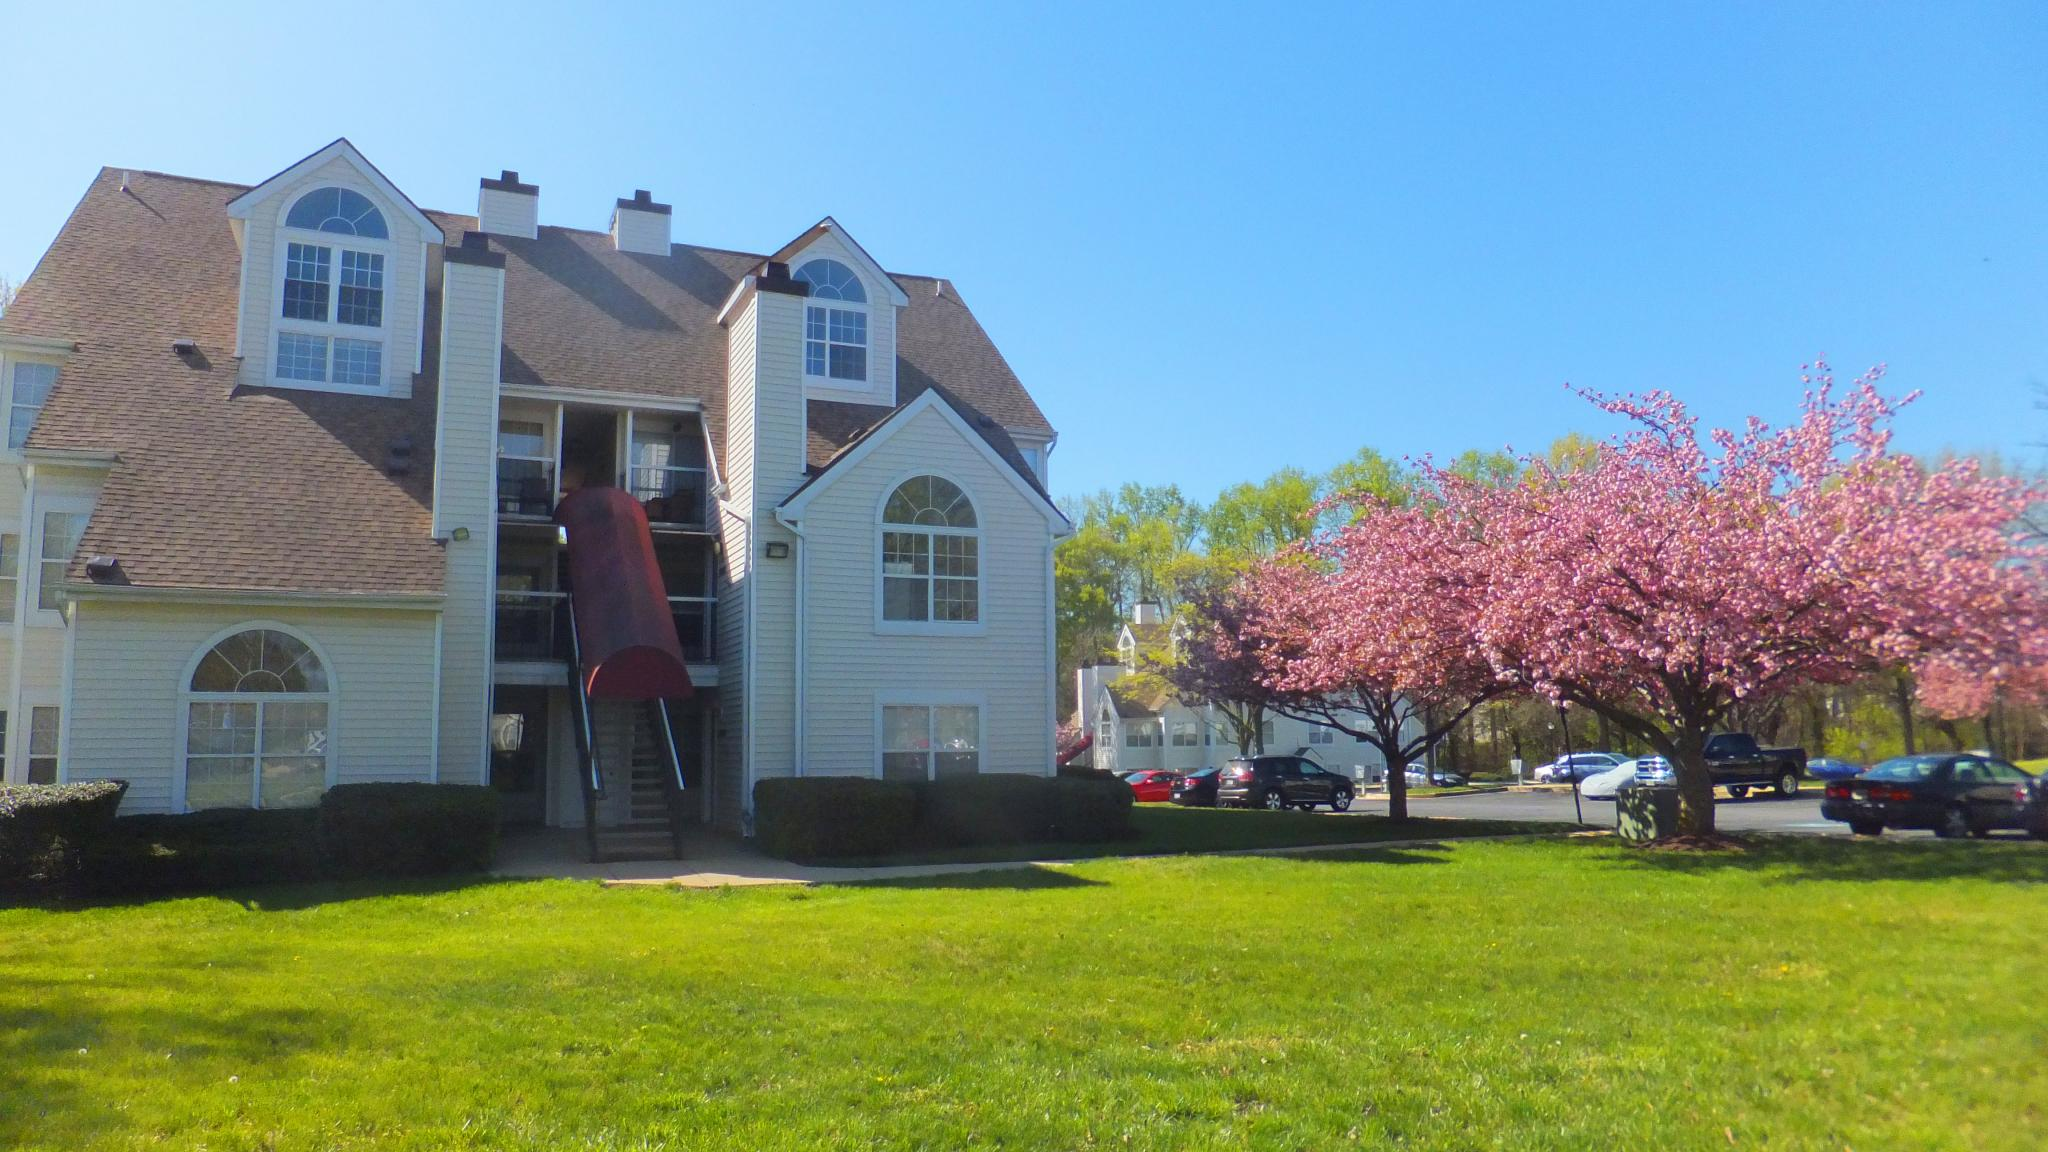 10408 Westridge Dr For Rent - Bowie, MD | Trulia